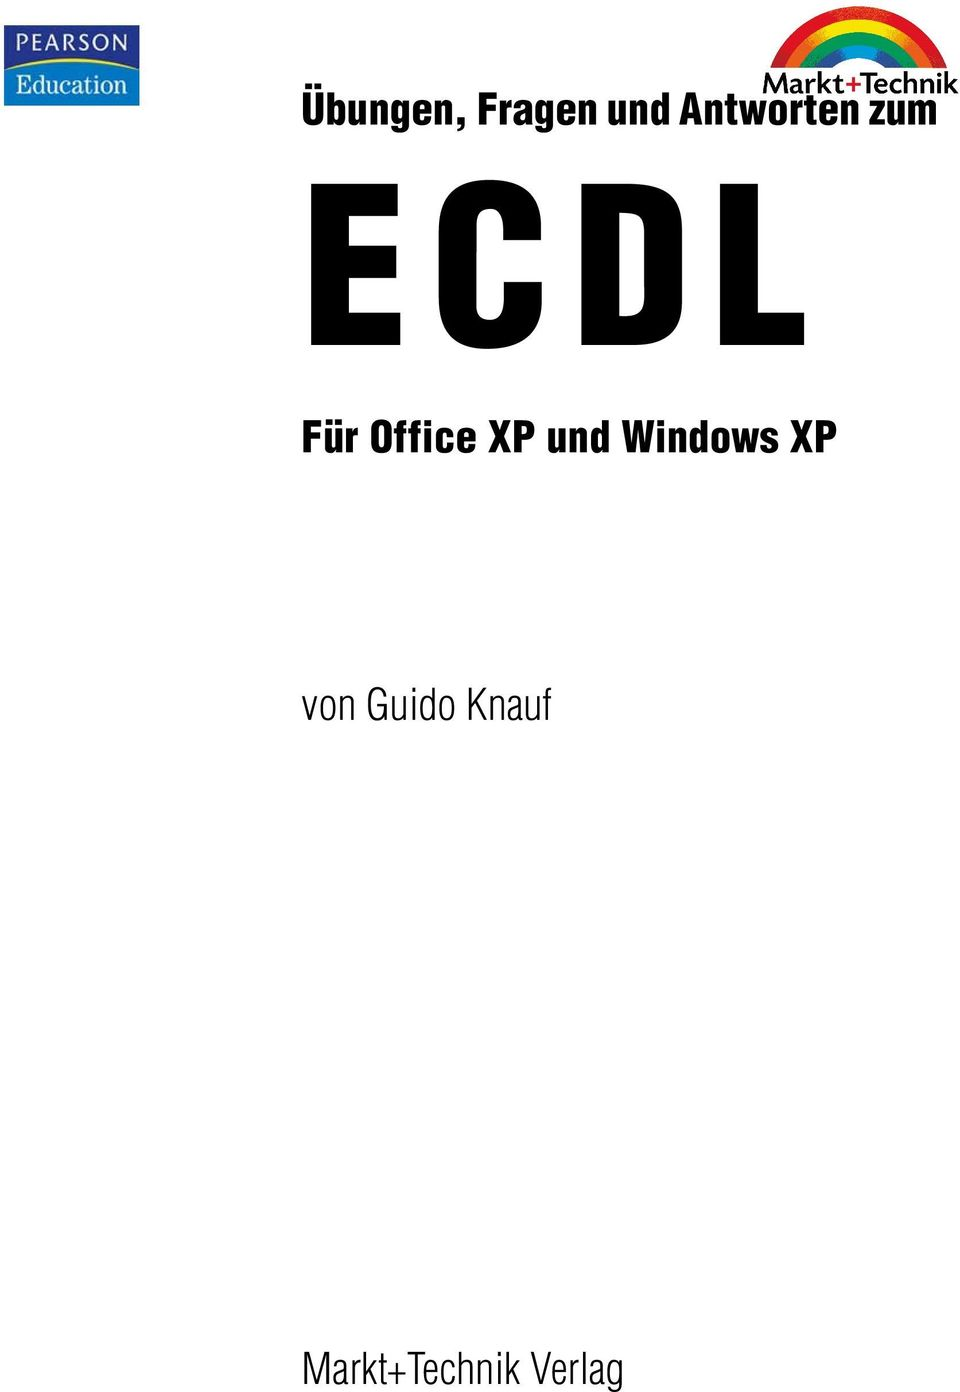 Office XP und Windows XP